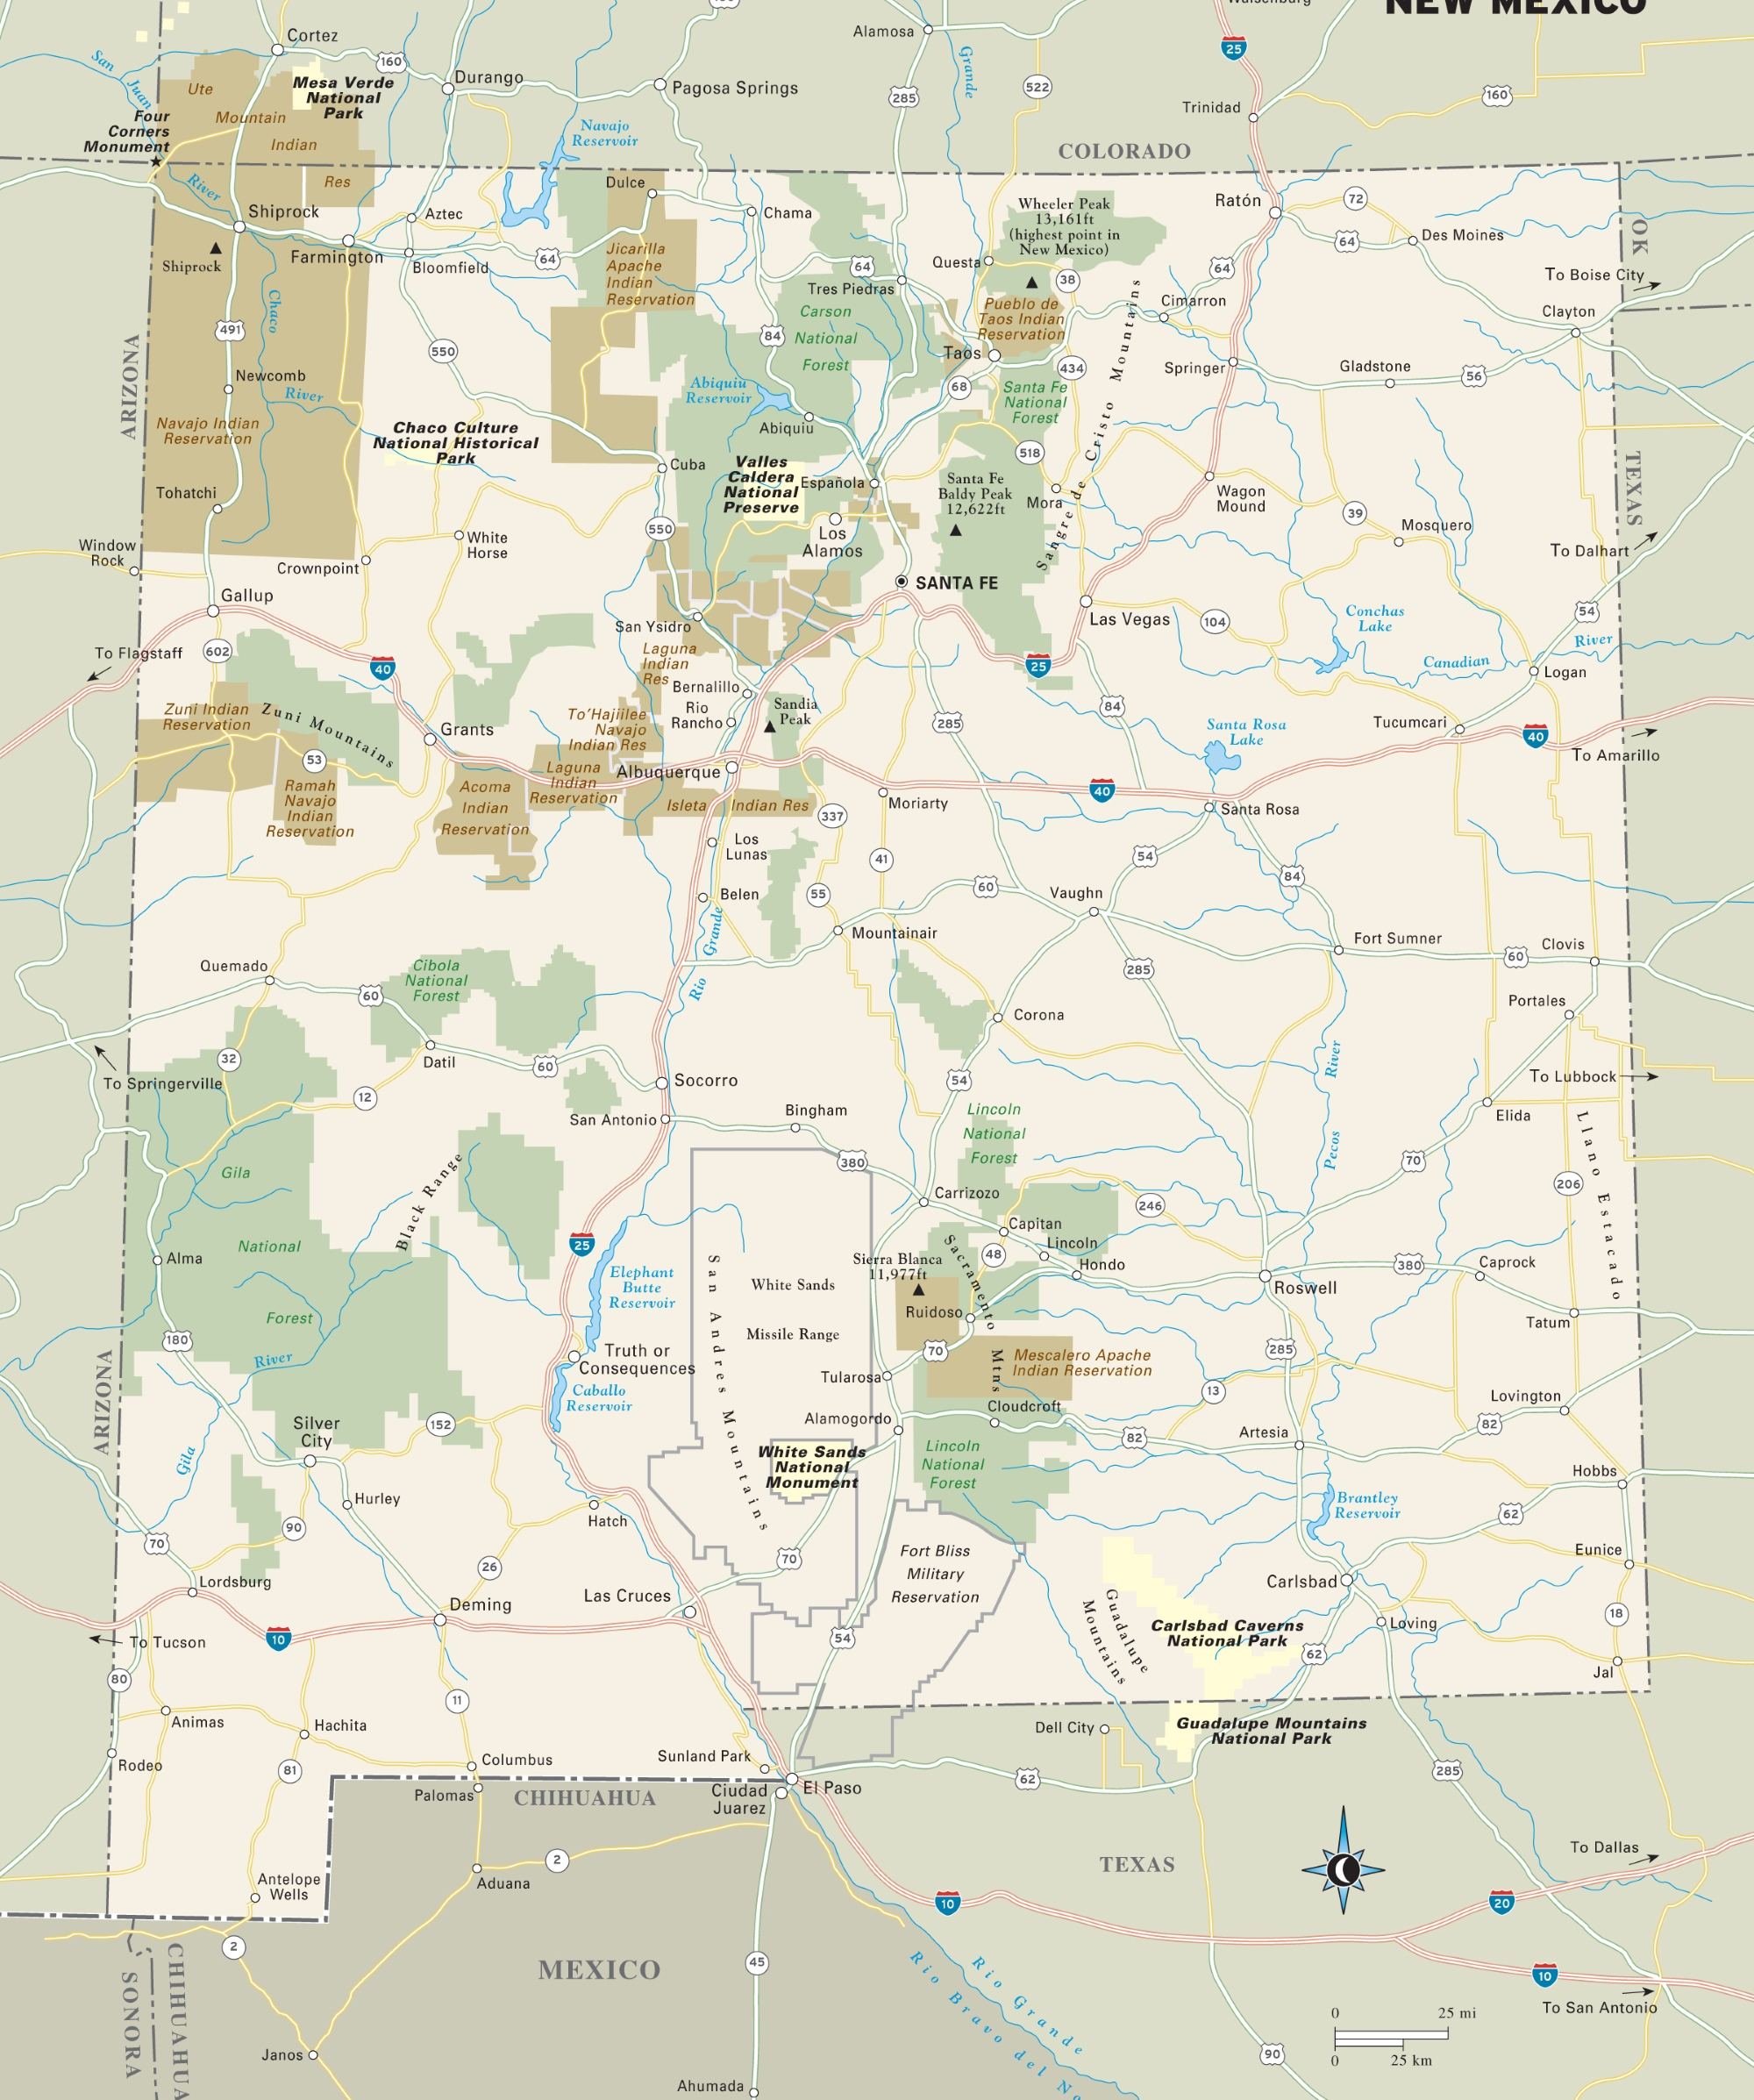 Map Of Usa Forests.New Mexico National Parks Monuments And Forests Map